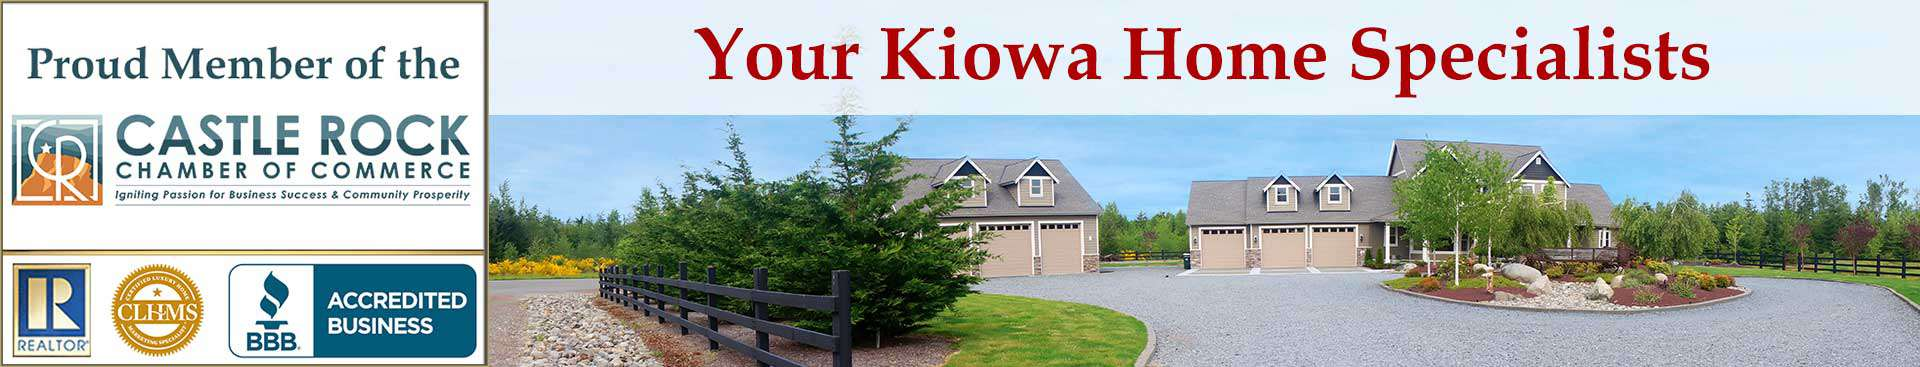 Kiowa CO Organizational Banner